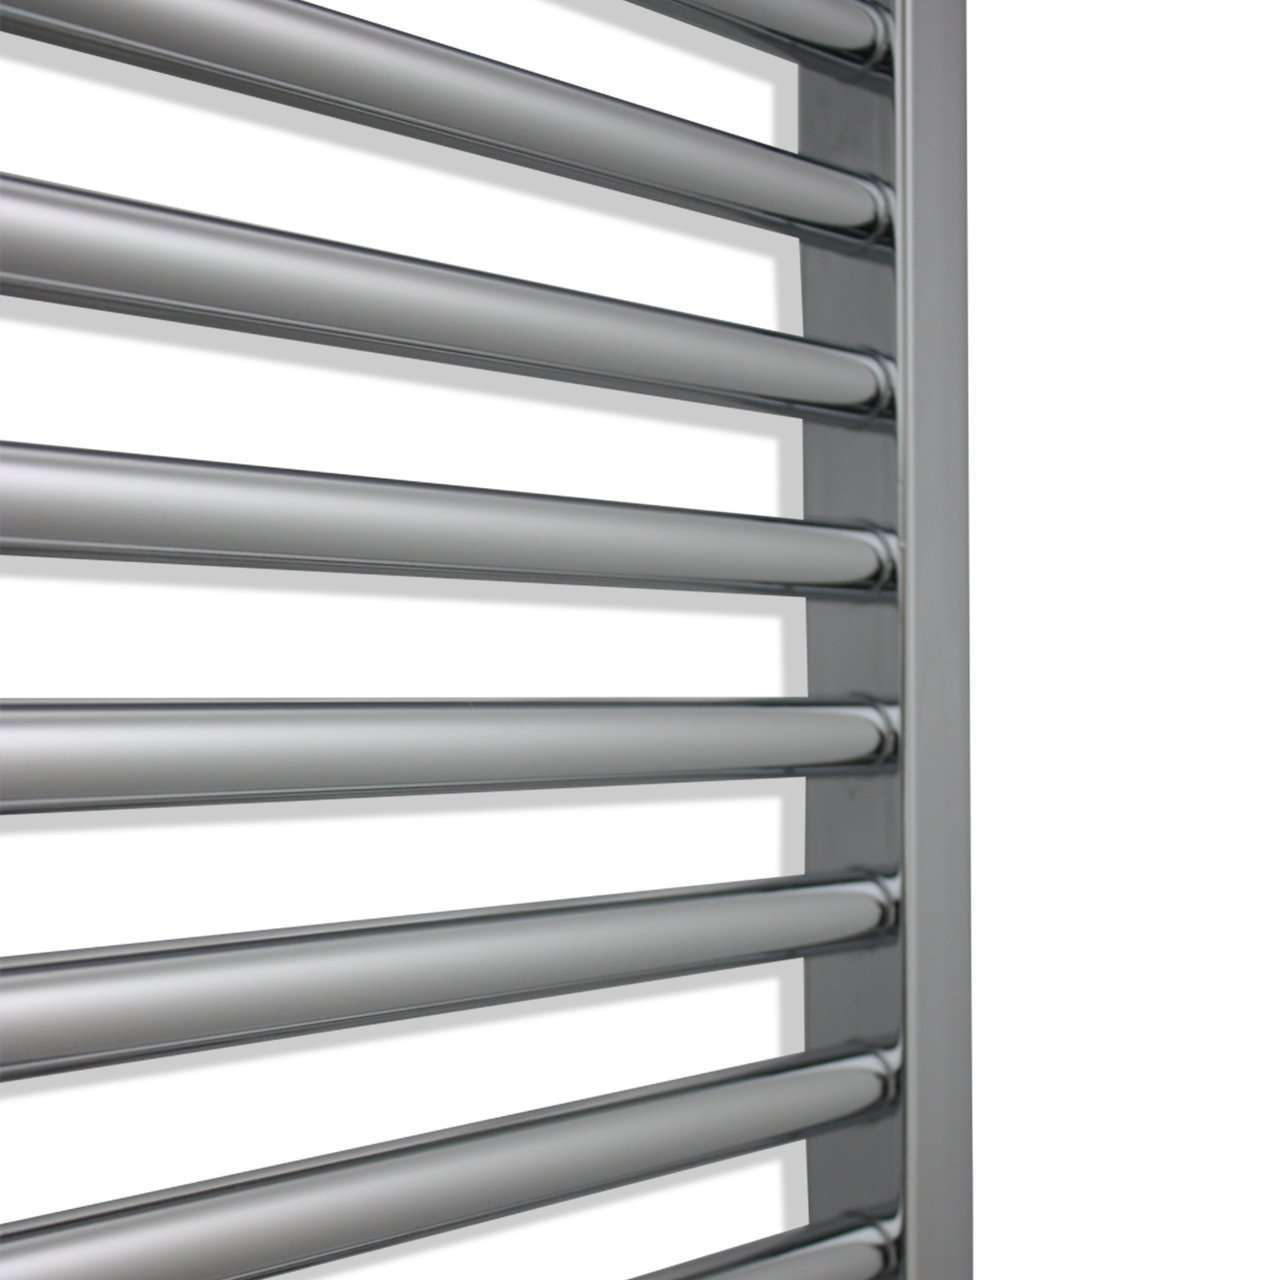 500mm Wide 600mm High Curved Chrome Heated Towel Rail Radiator HTR